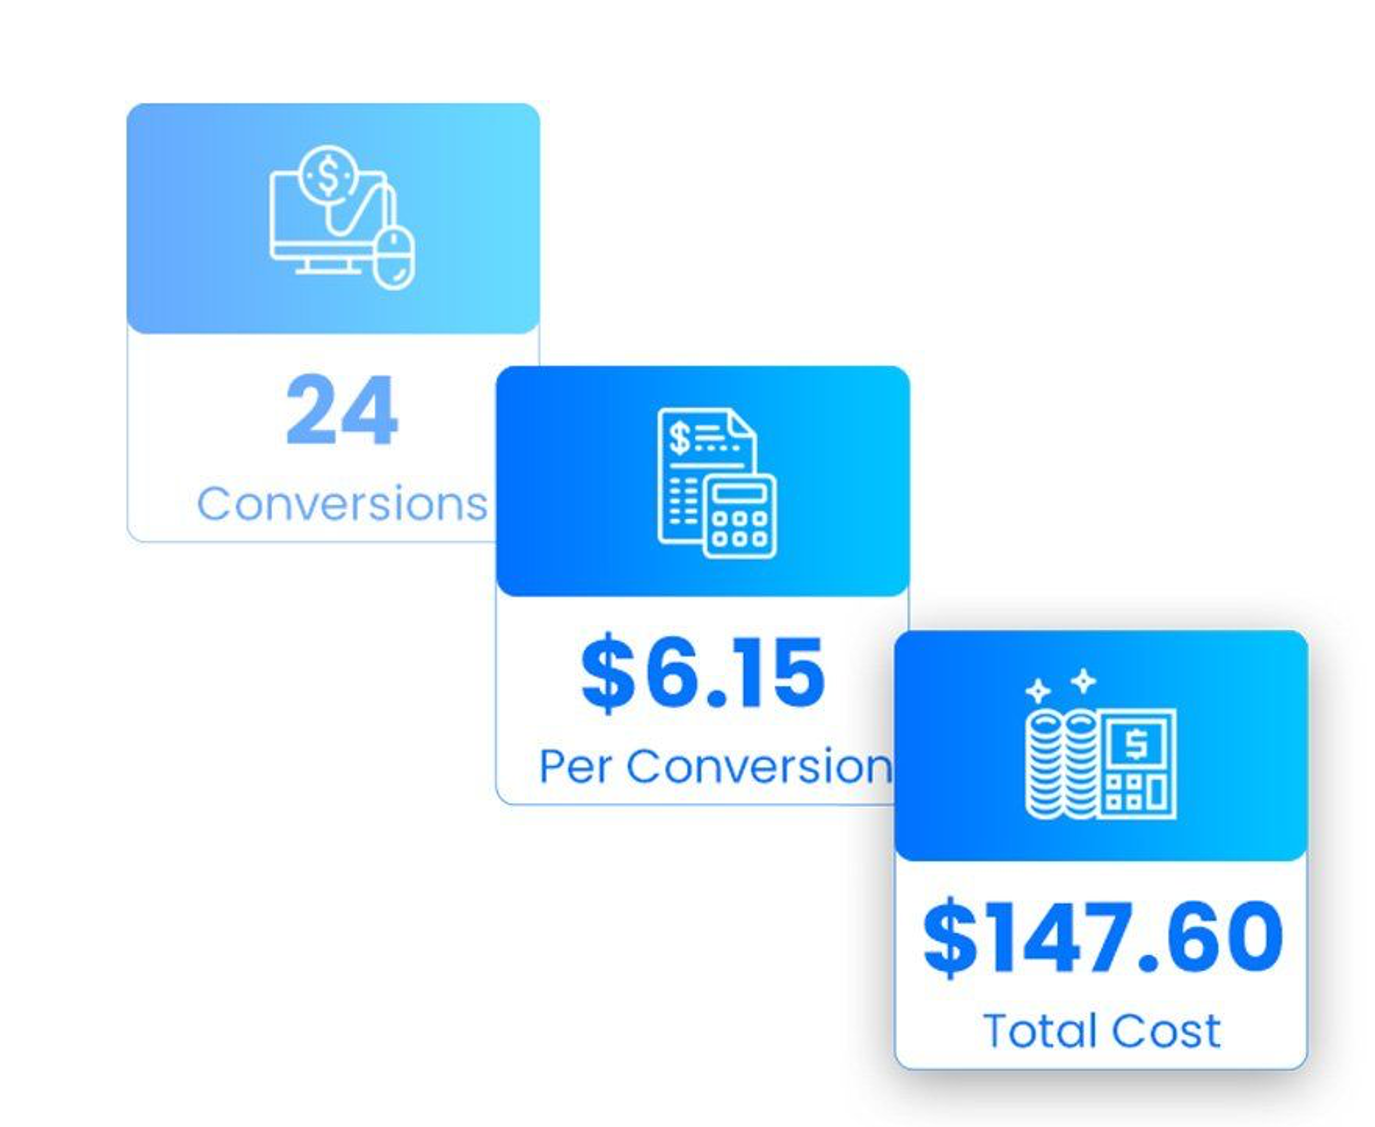 3 images of conversion results from PPC